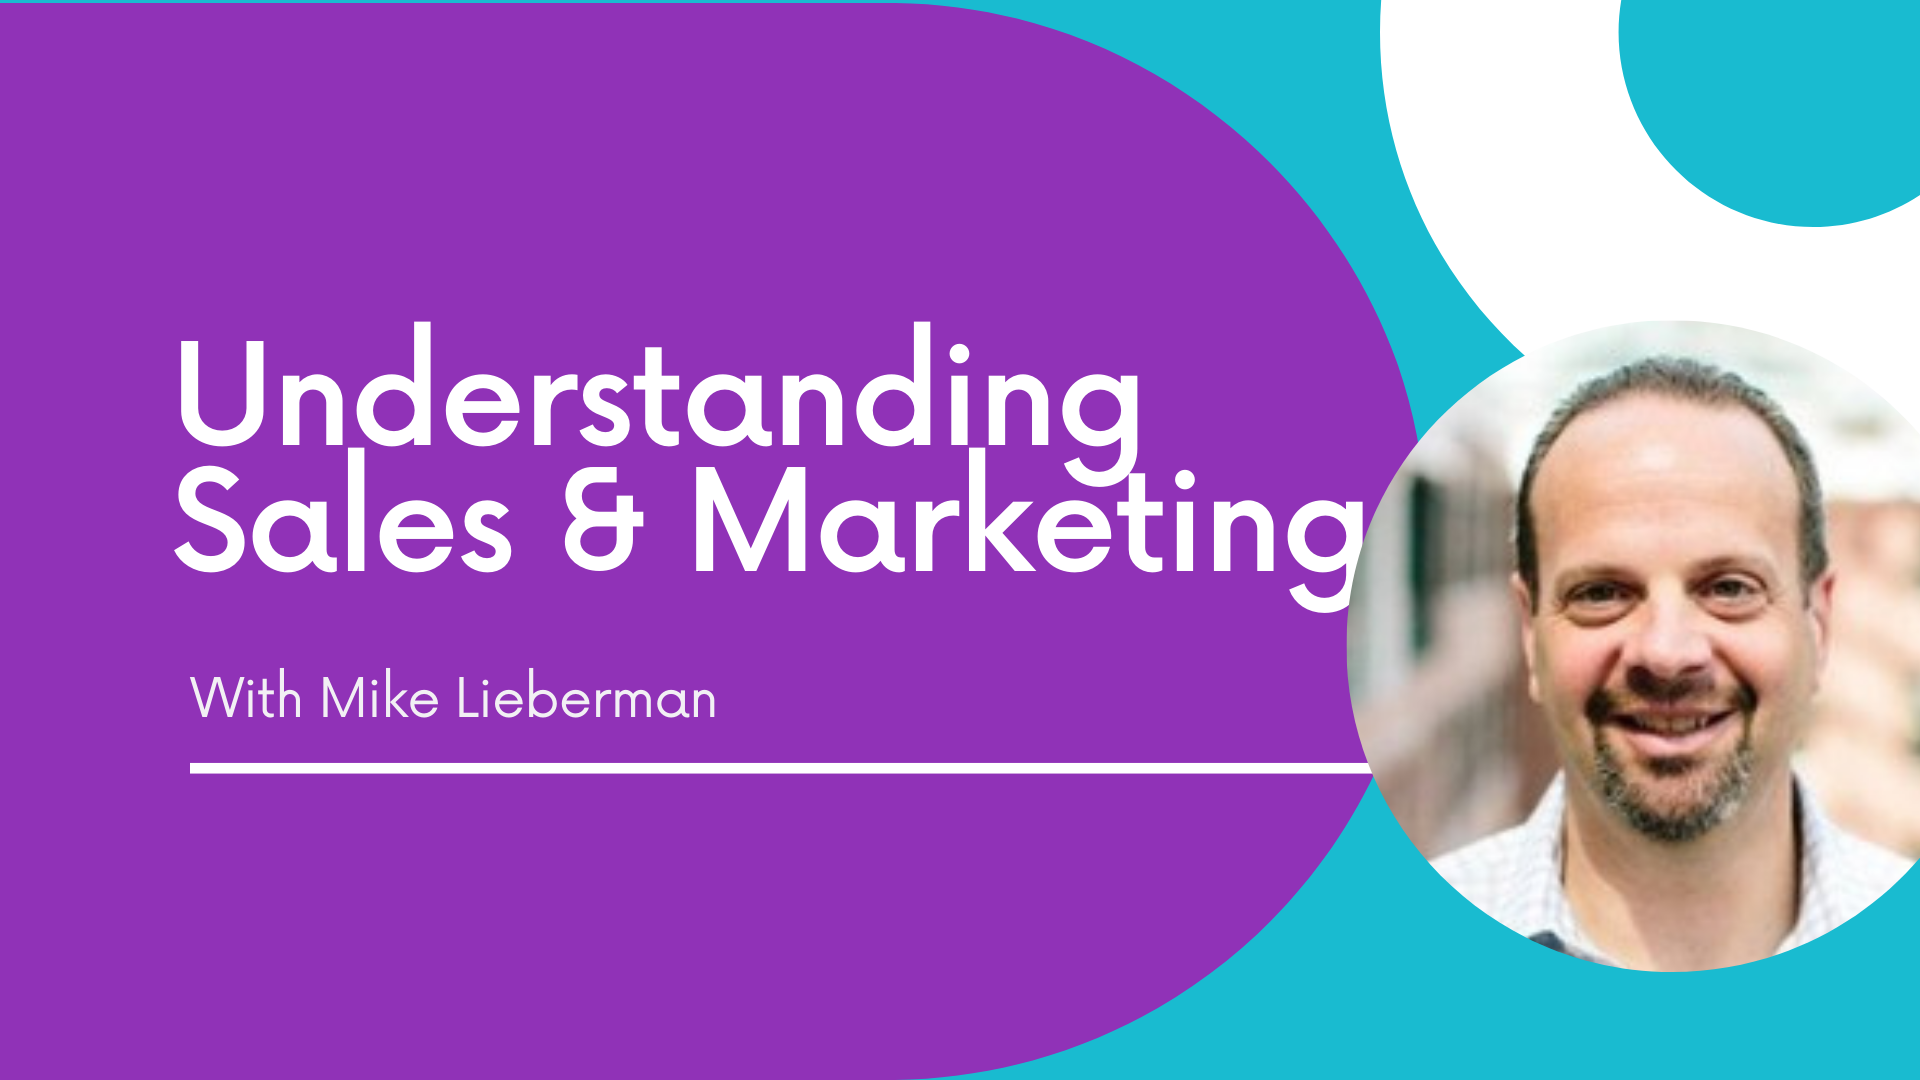 Sales & Marketing with Mike Lieberman